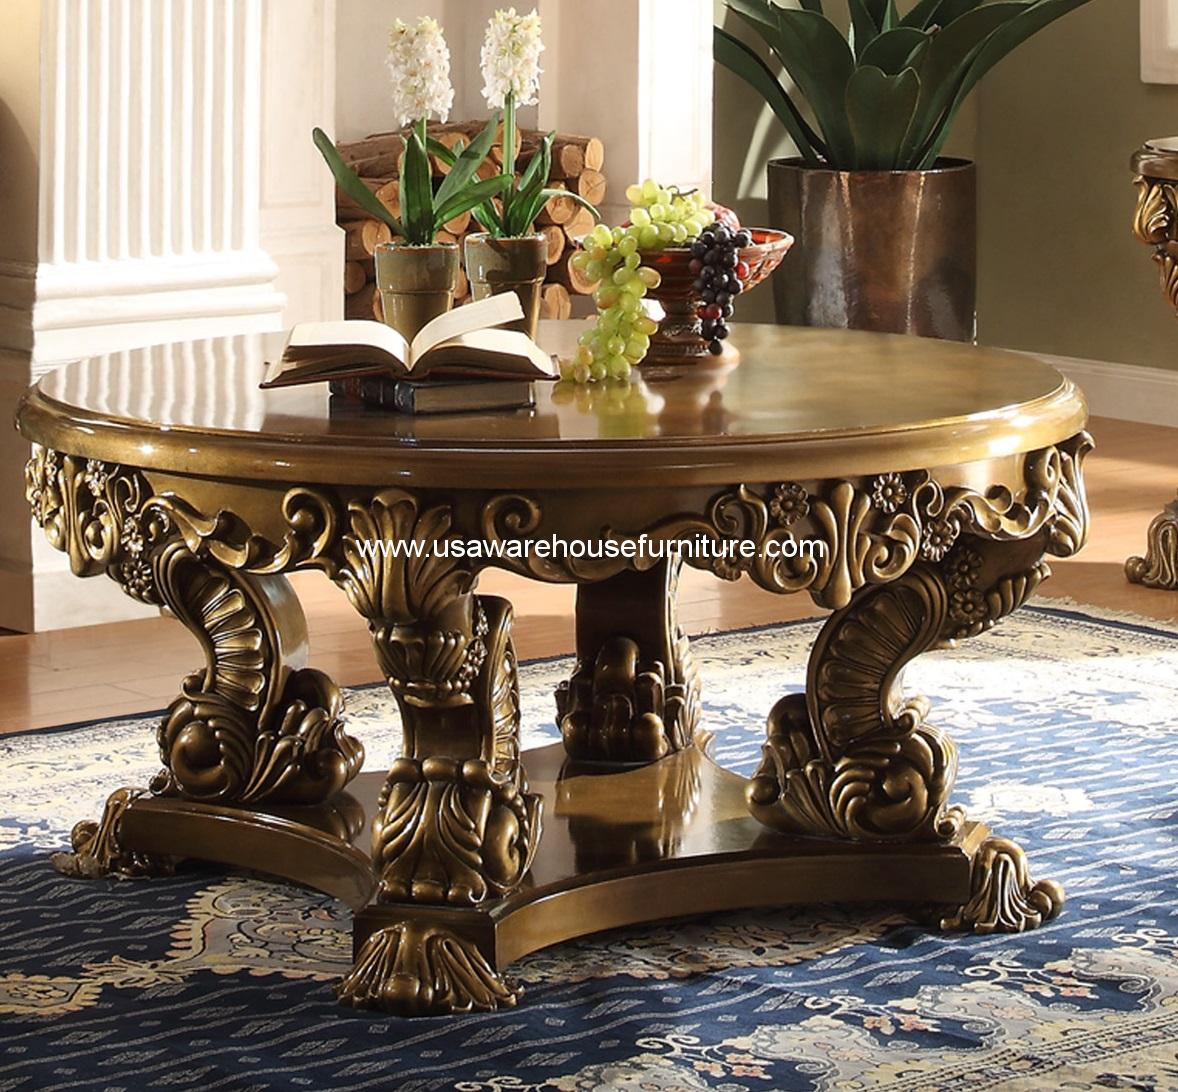 Victorian Style Marble Coffee Table: Homey Design HD-8008 Victorian Palace Round Cocktail Table